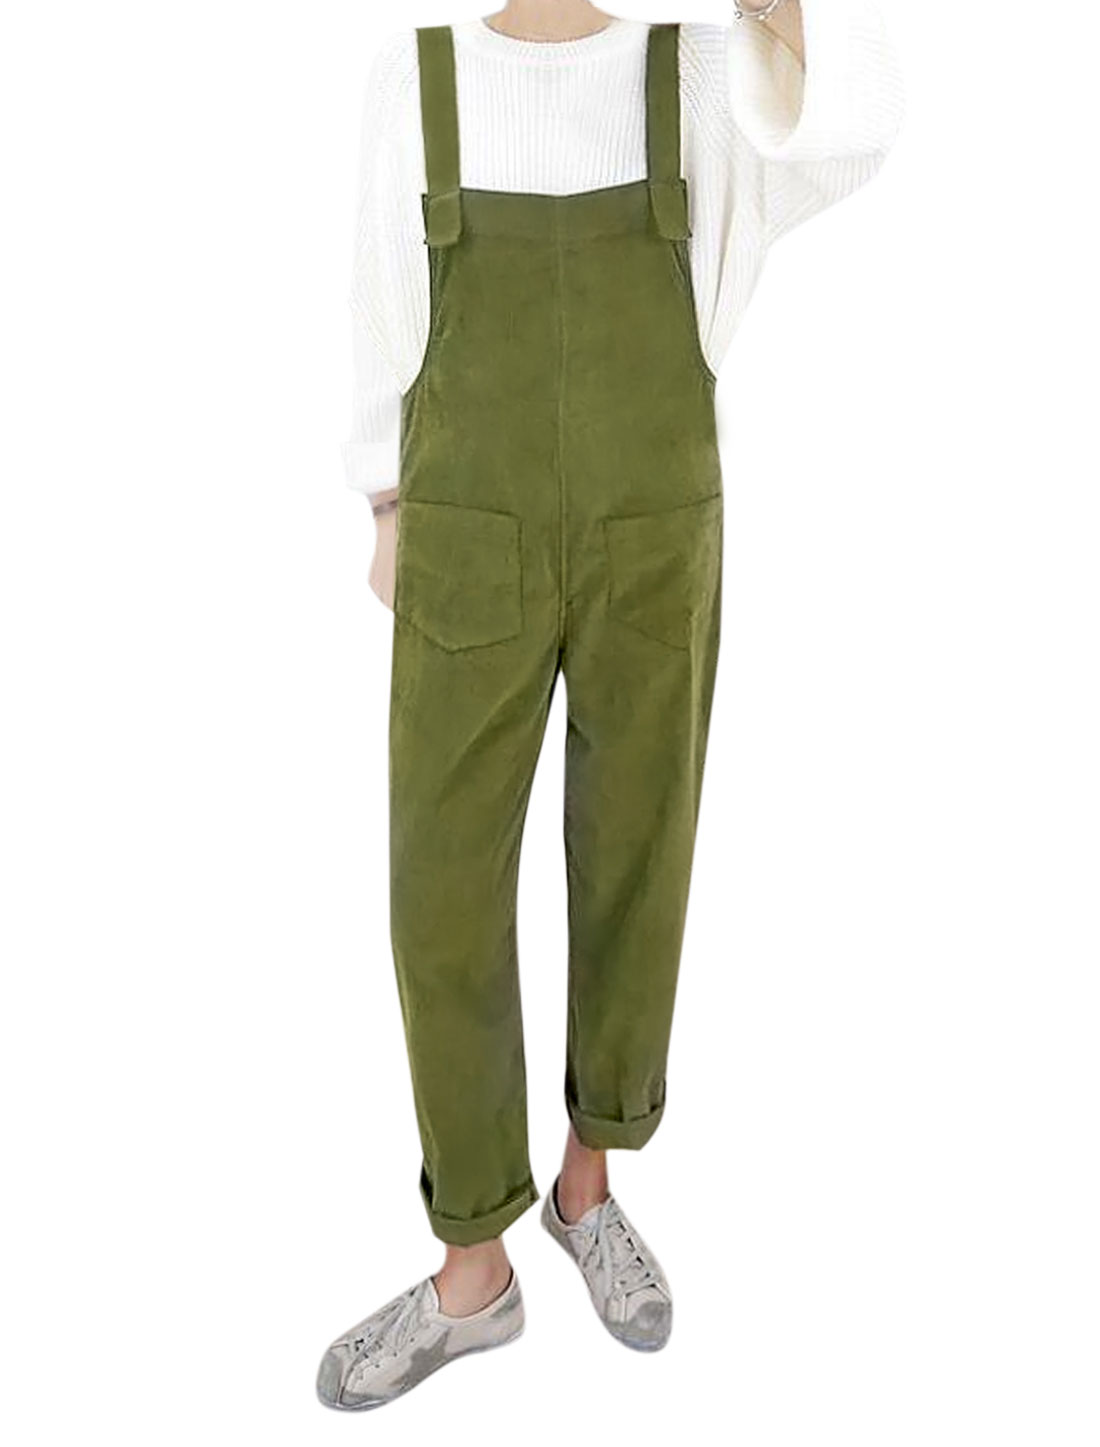 Women Button Closed Straps Two Front Pockets Suspender Pants Green S